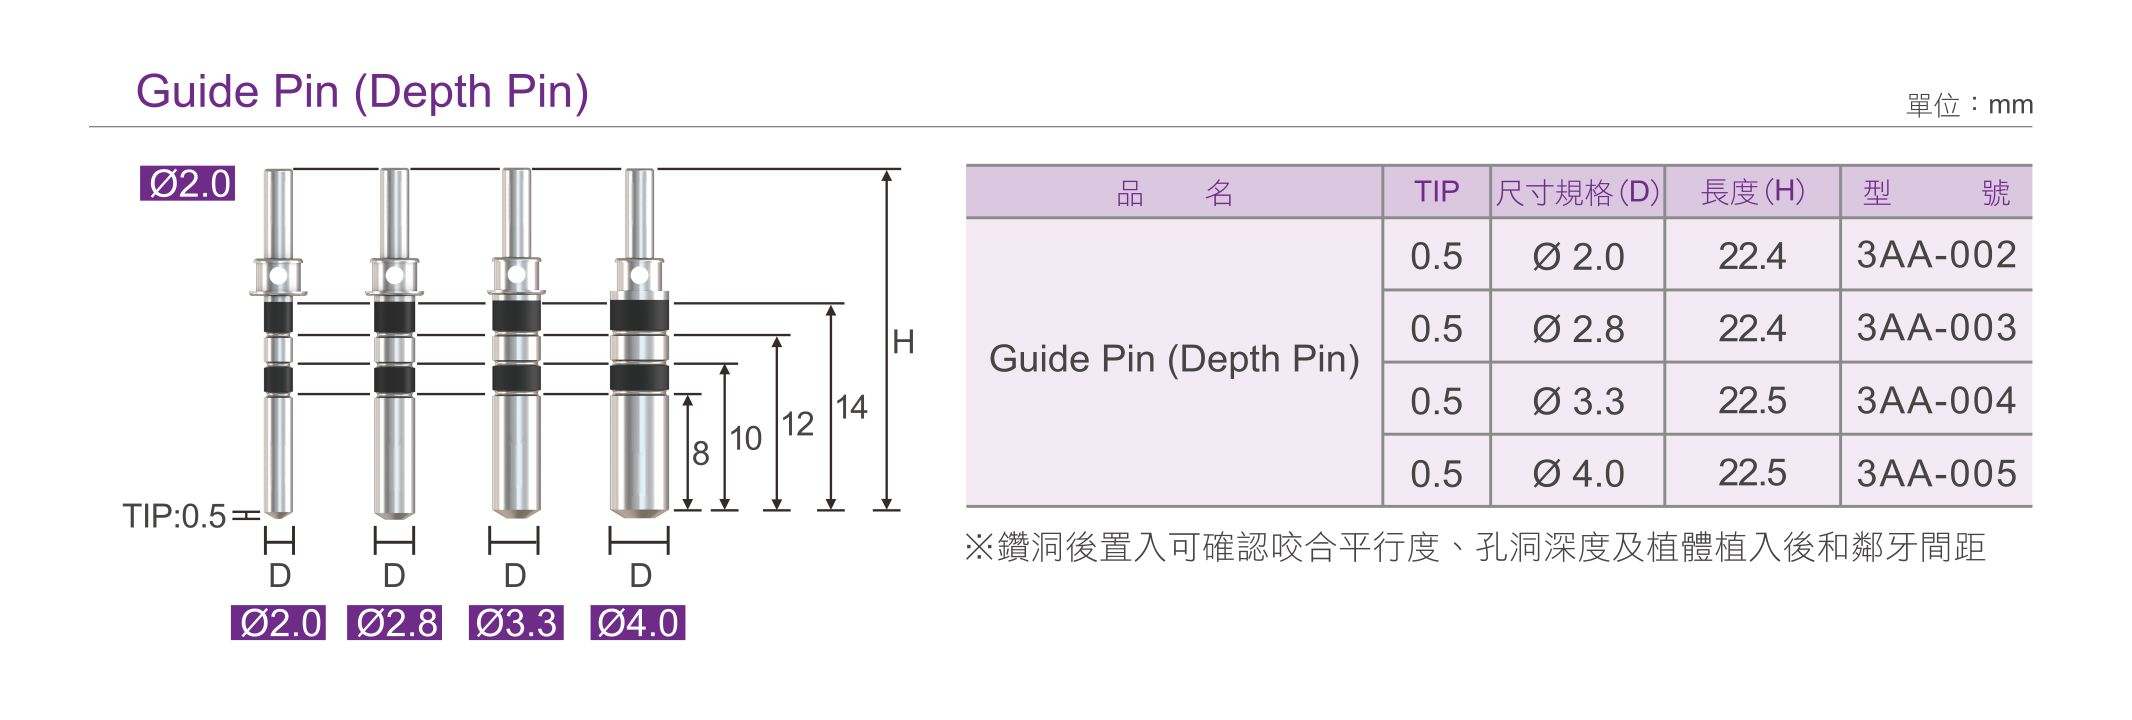 Guide Pin(Depth Pin)